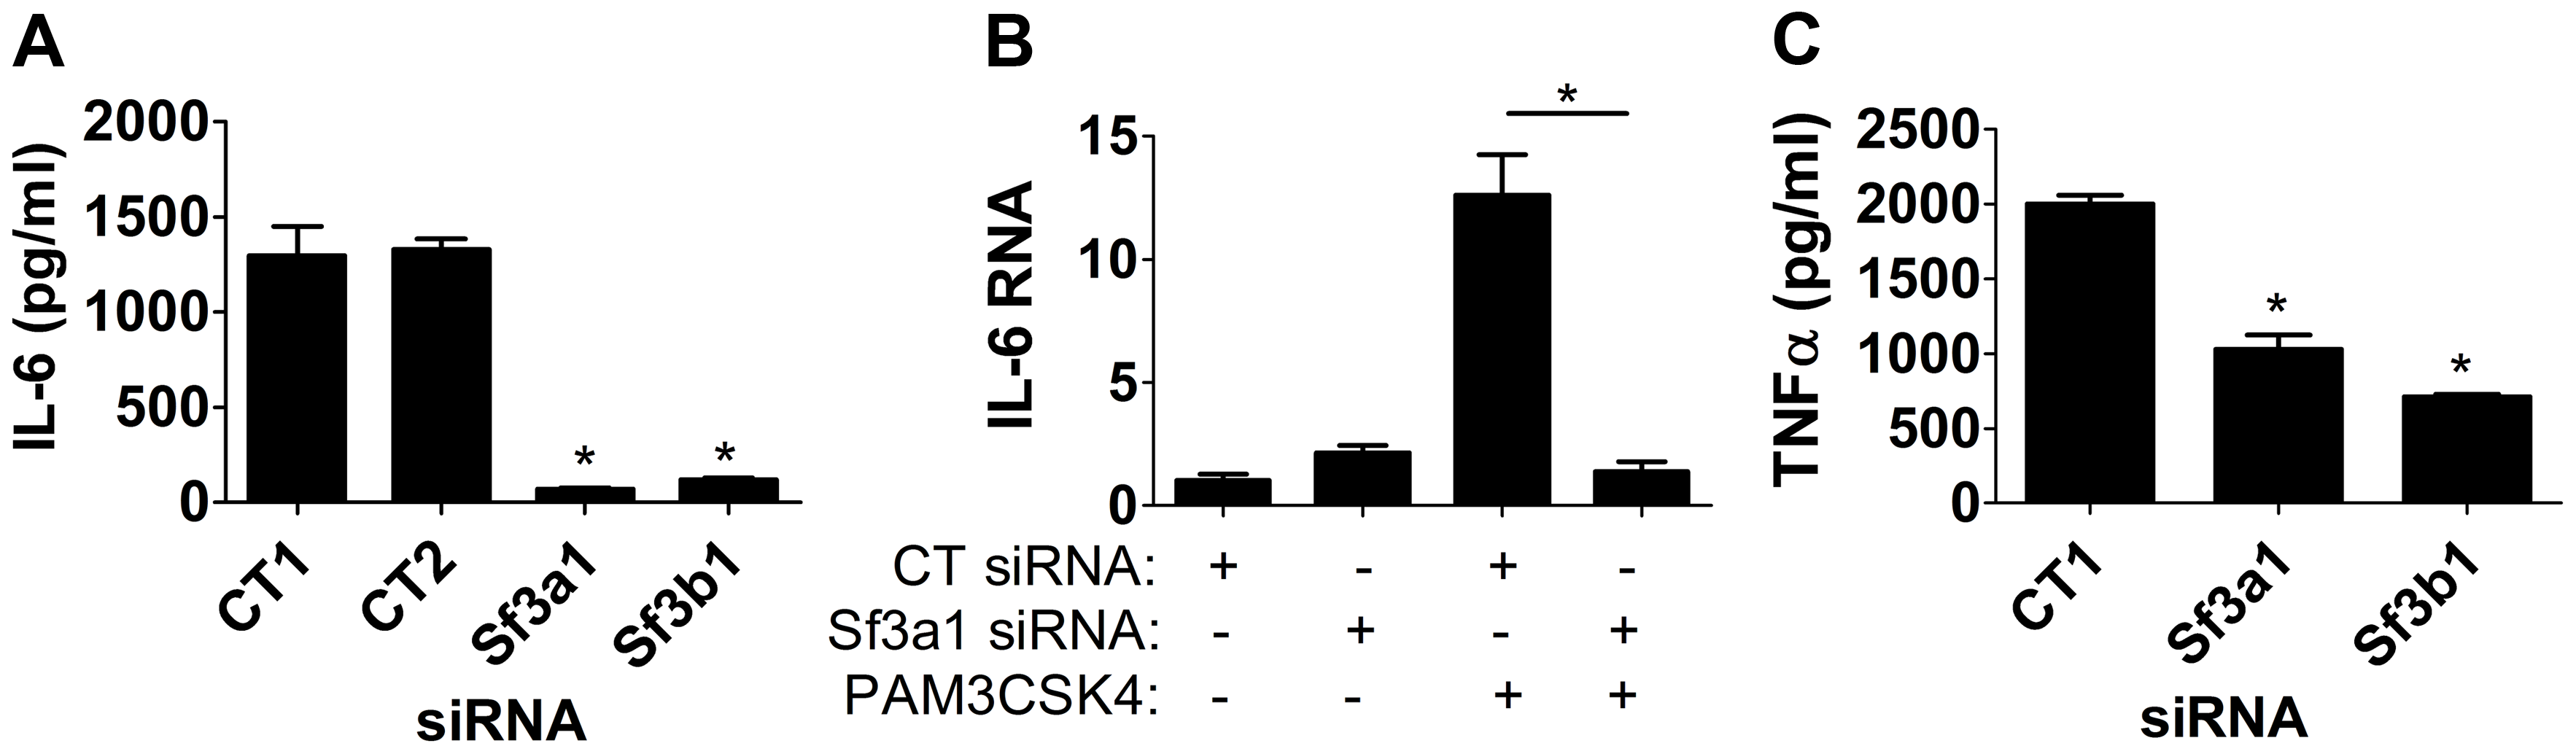 Inhibition of SF3A1 or SF3B1 diminishes PAM3CSK4-induced inflammatory cytokine production.